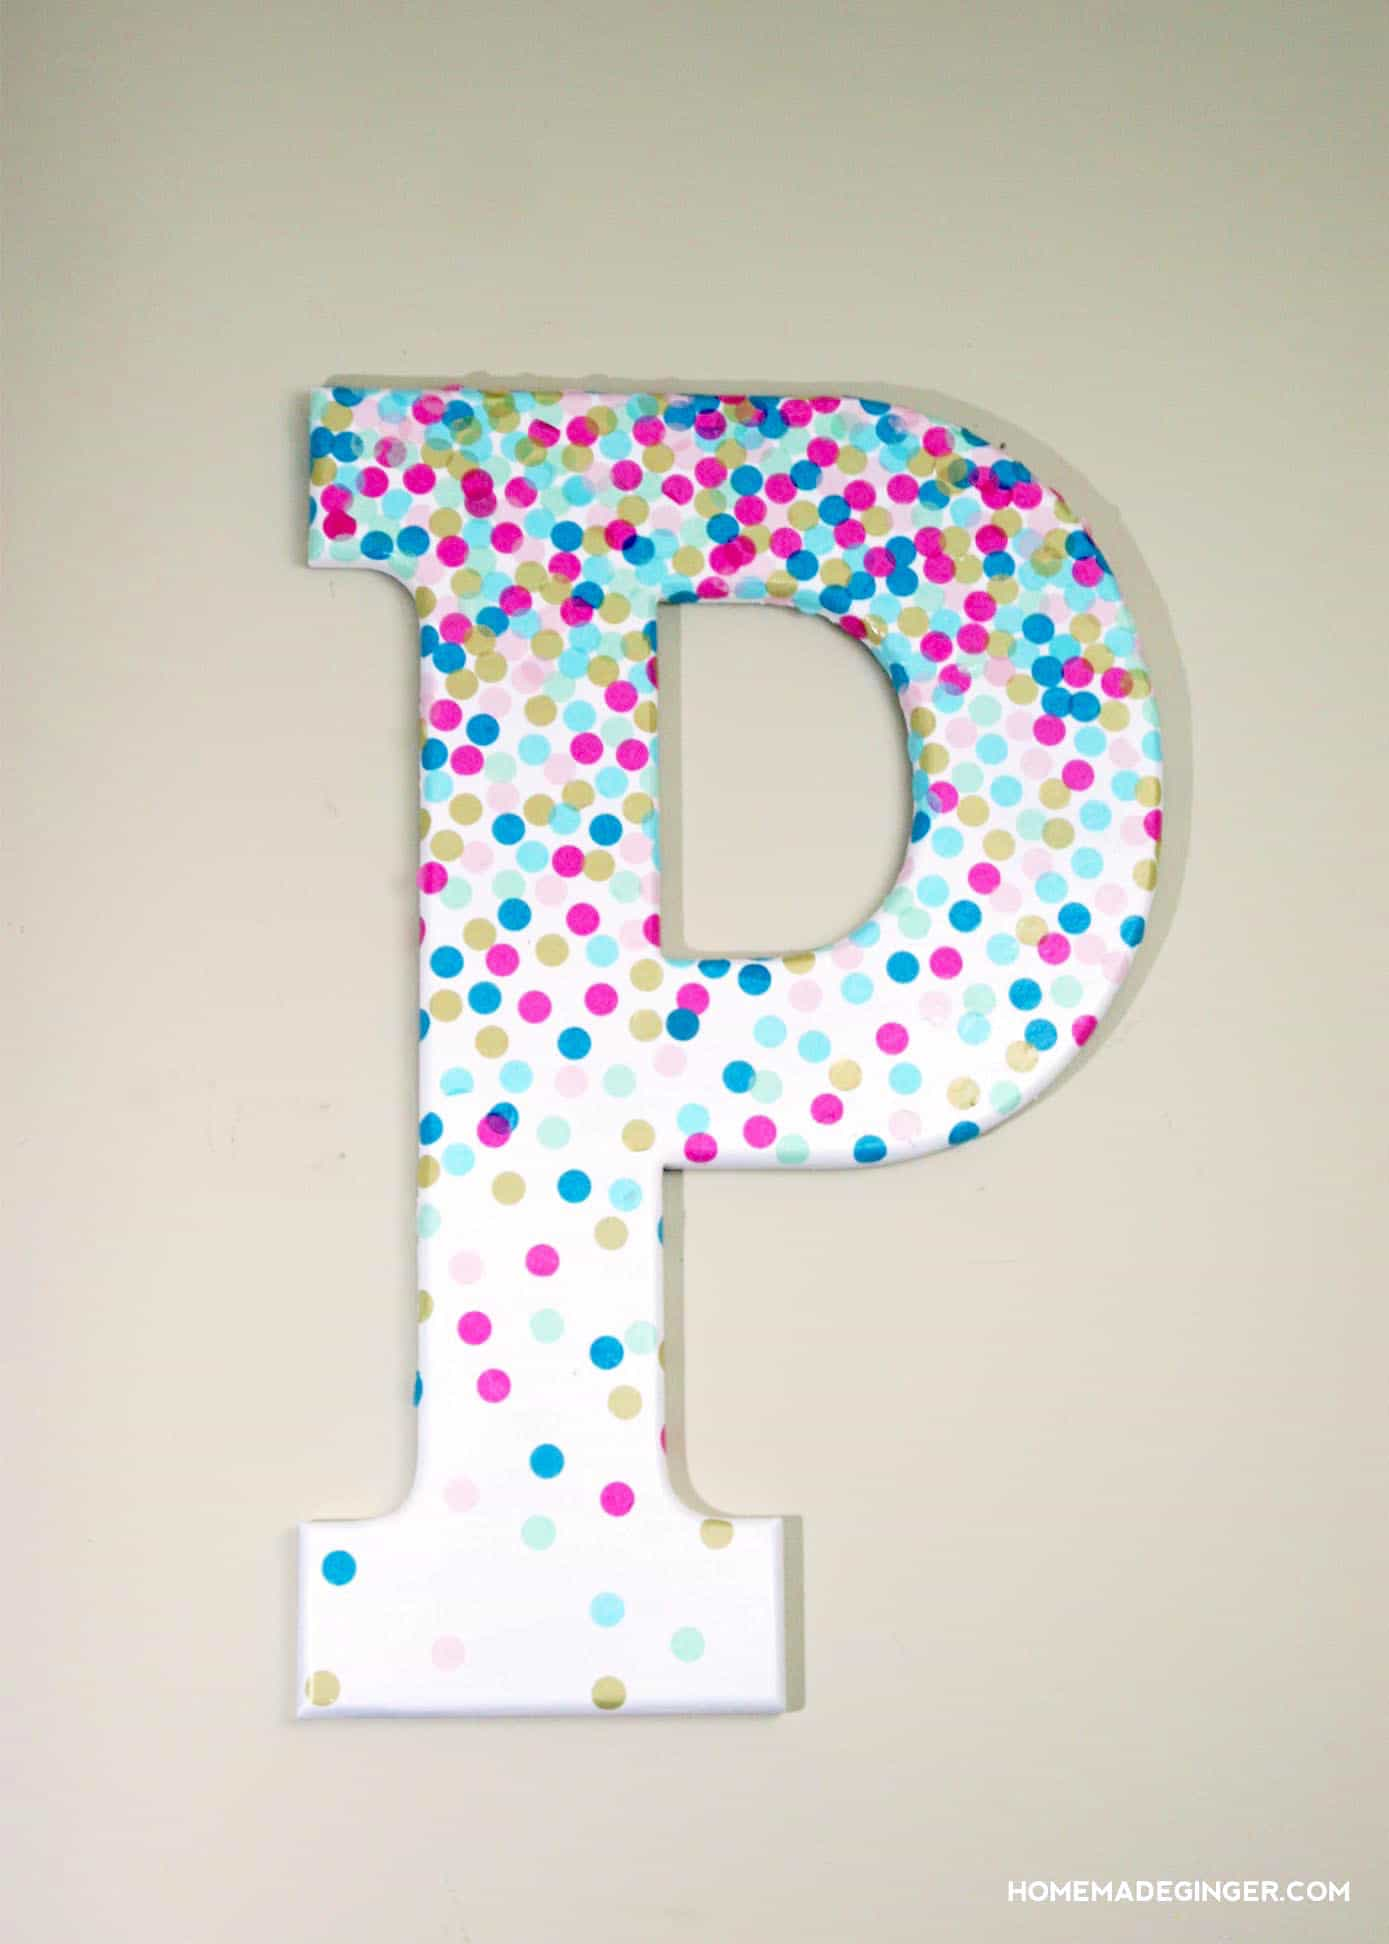 Learn how to make decorative letters using confetti and Mod Podge! This project is perfect for a kids